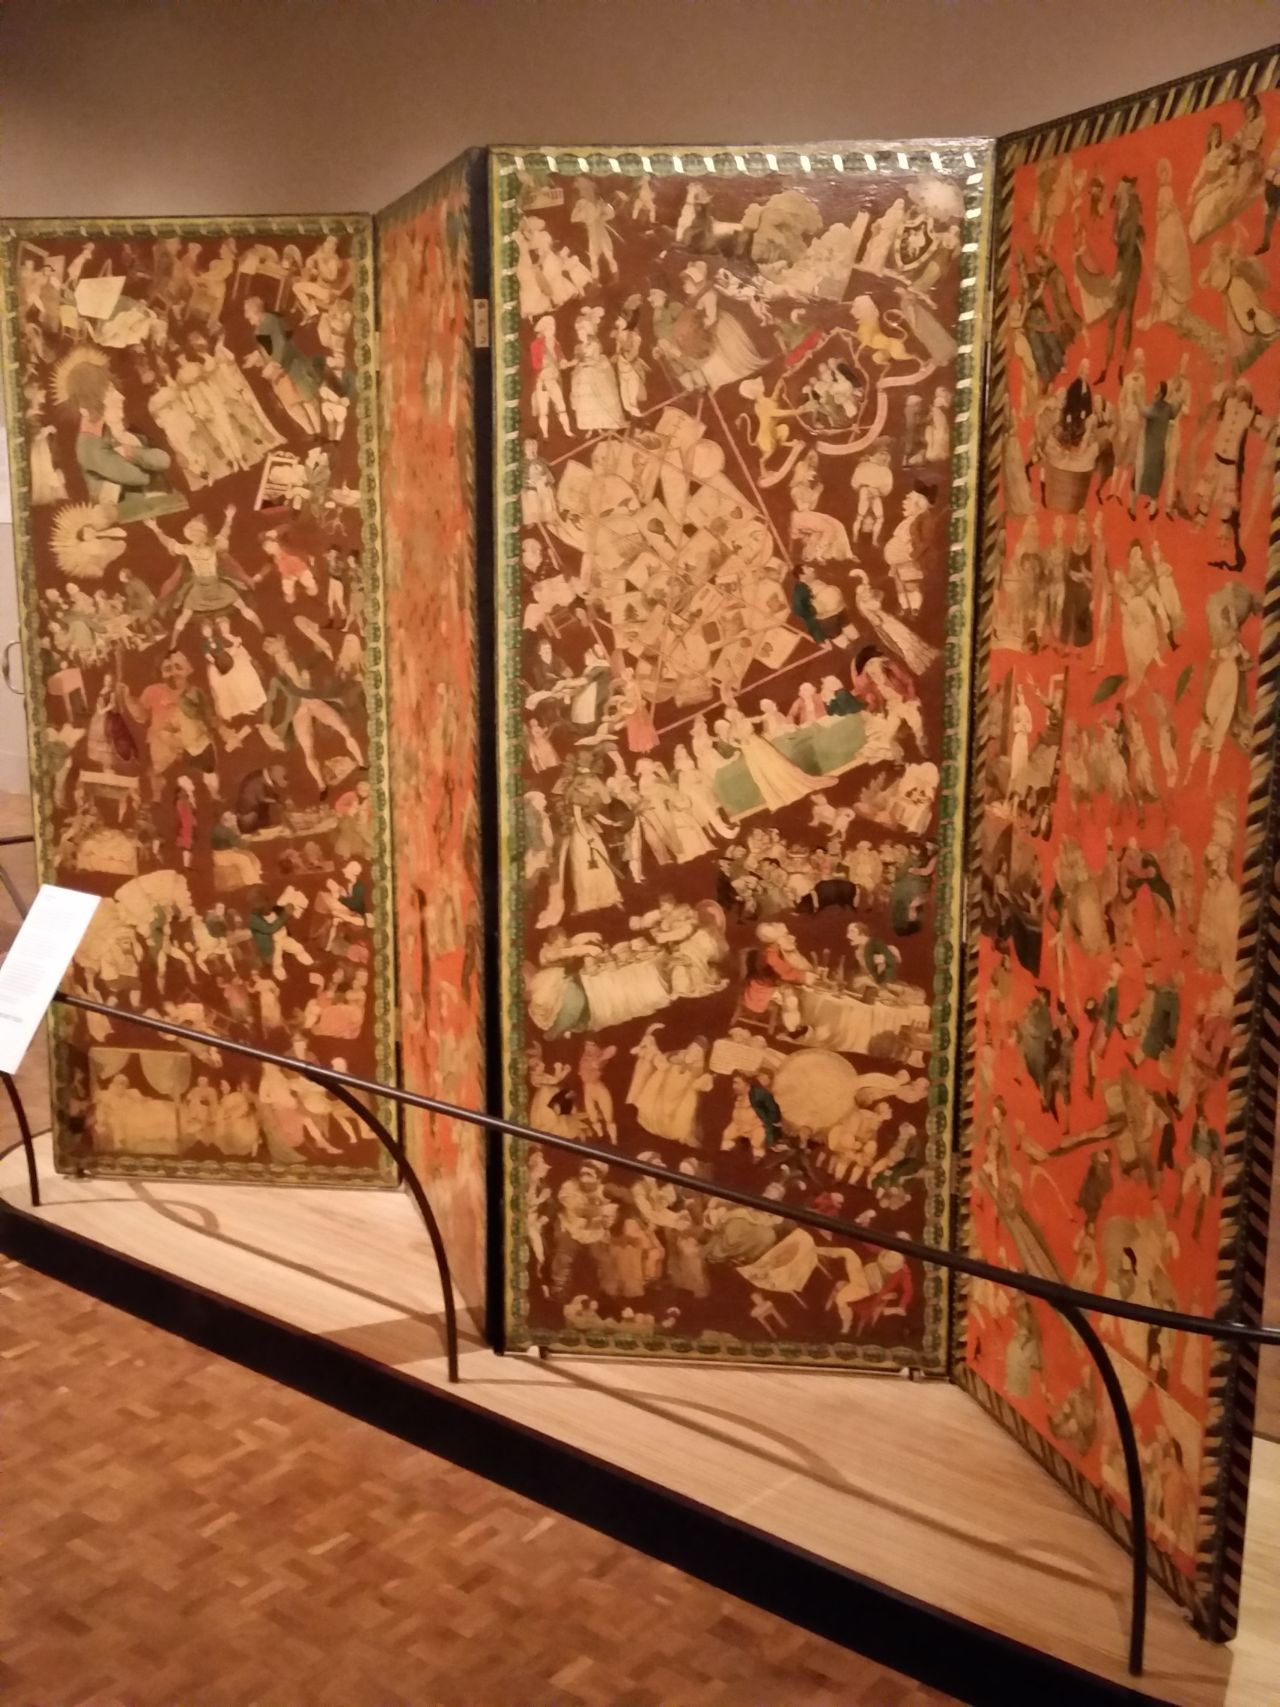 Thomas Rowlandson, Folding screen with pasted-on satirical prints, late 18th century